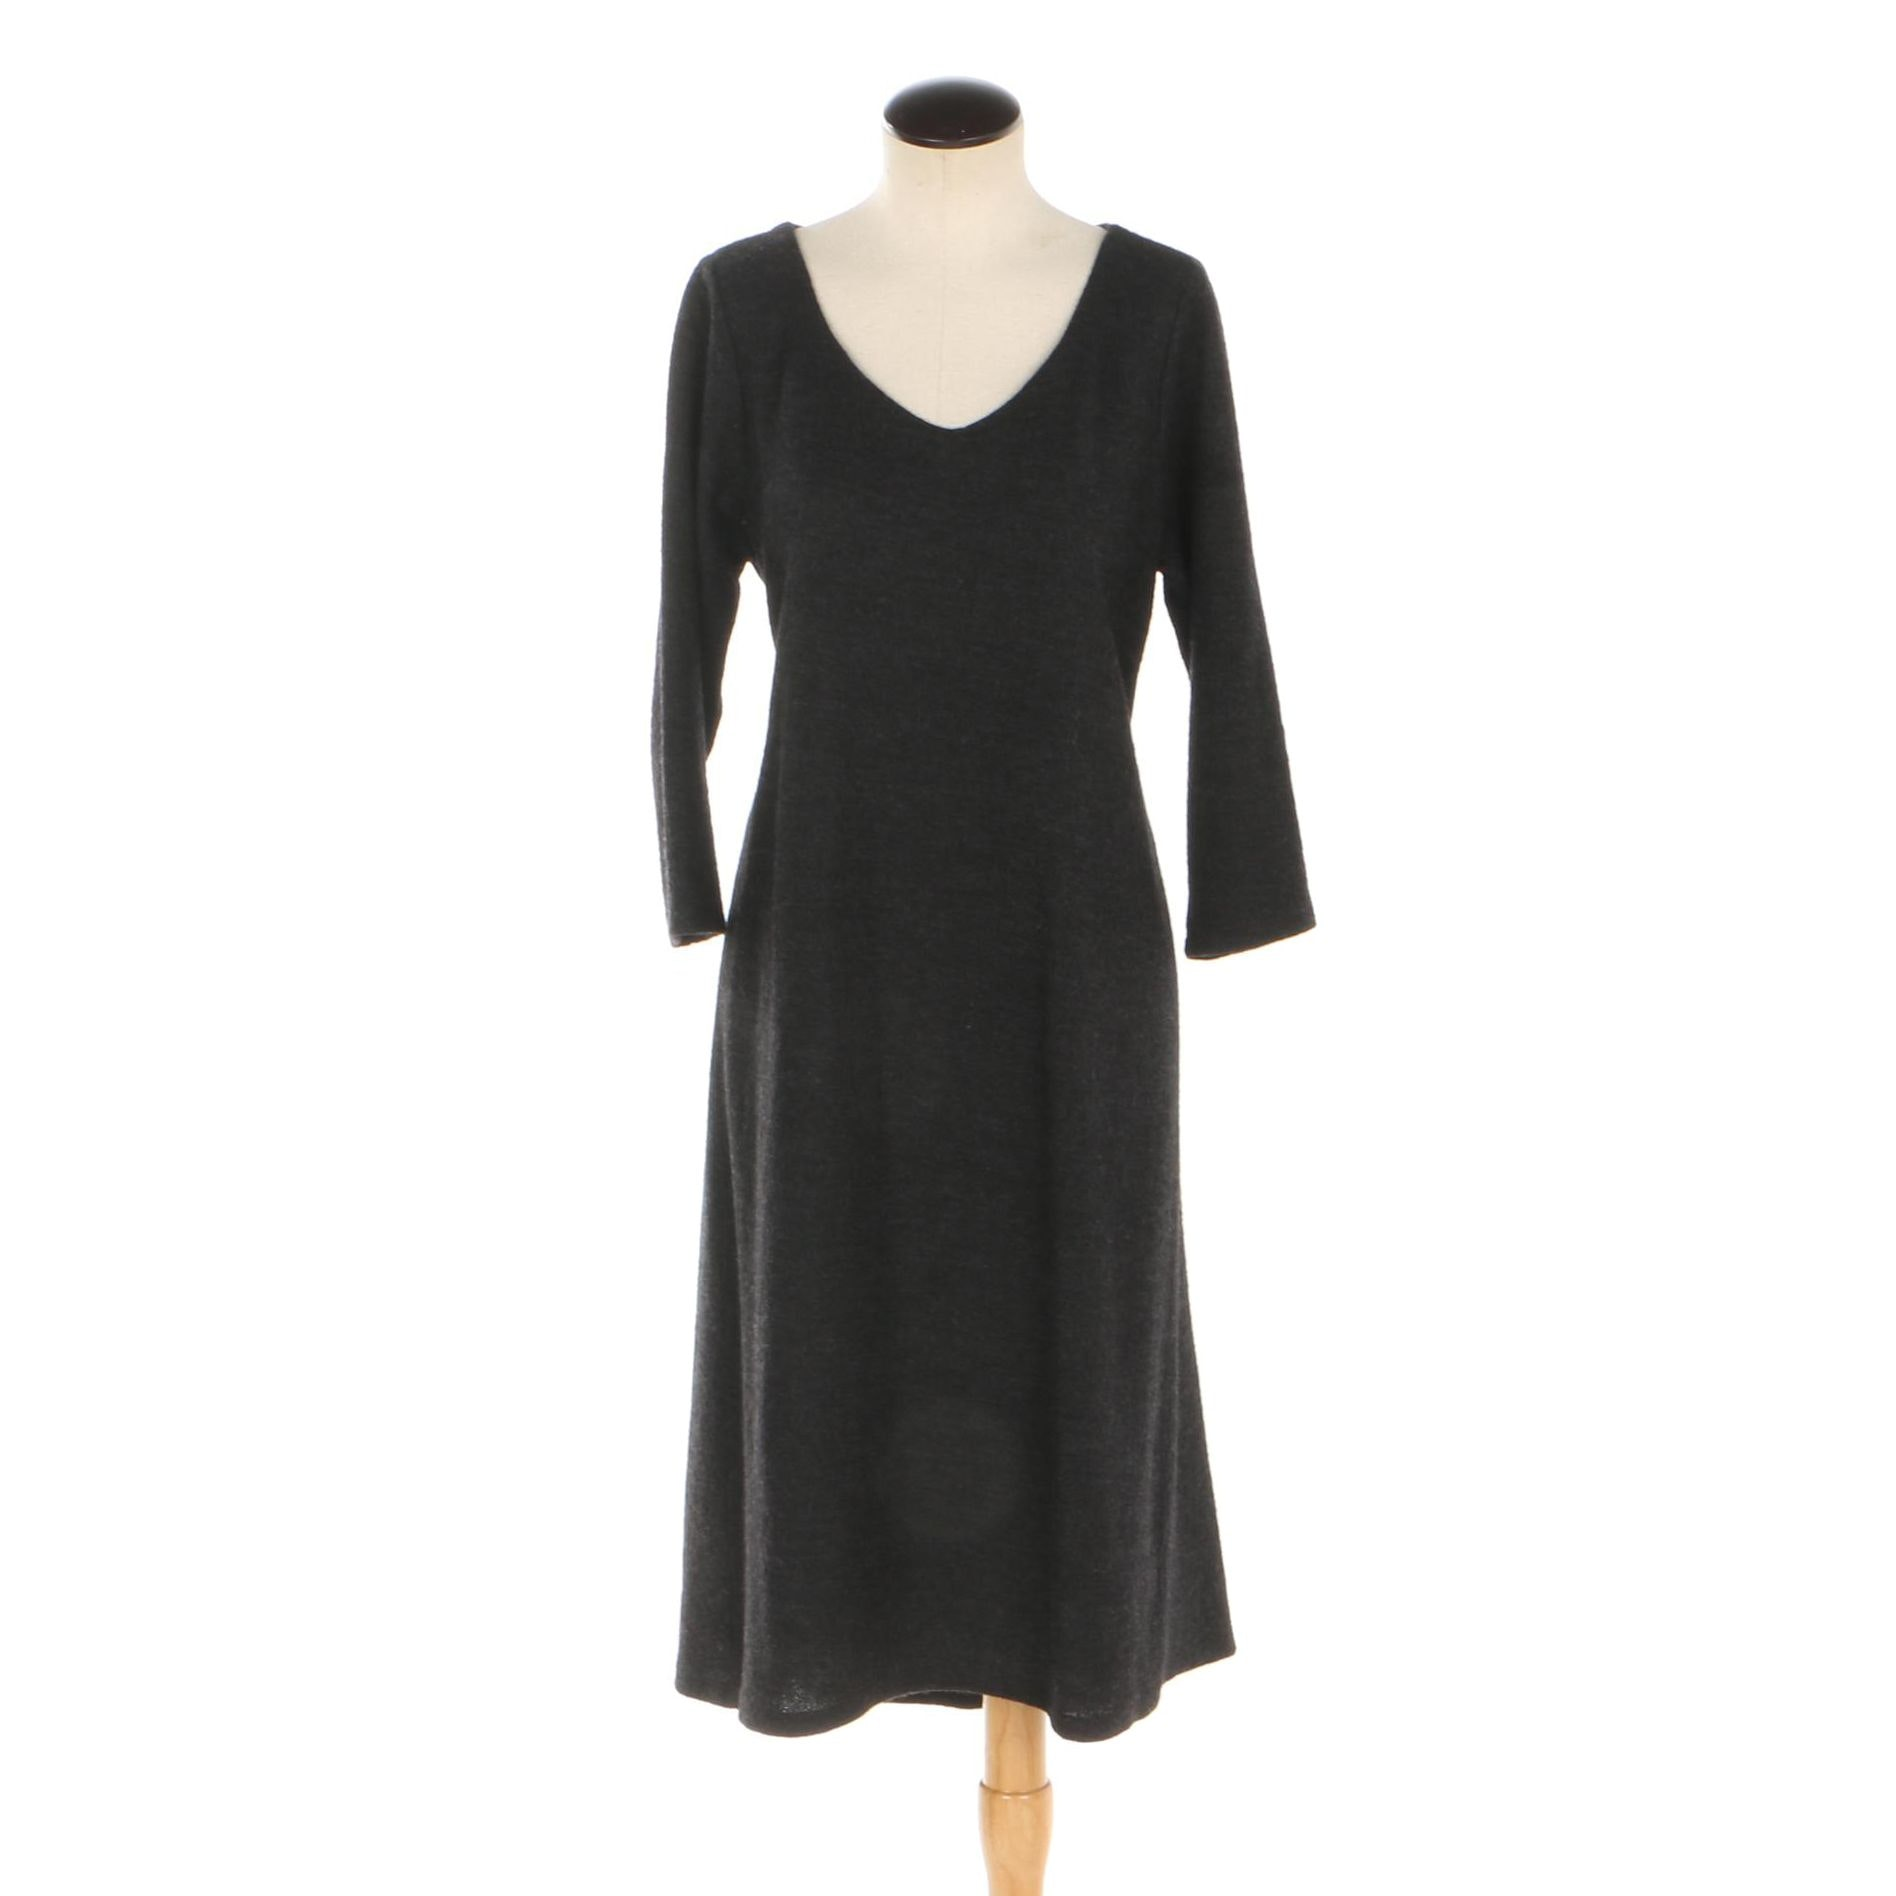 Eileen Fisher Heather Black Wool Shift Dress